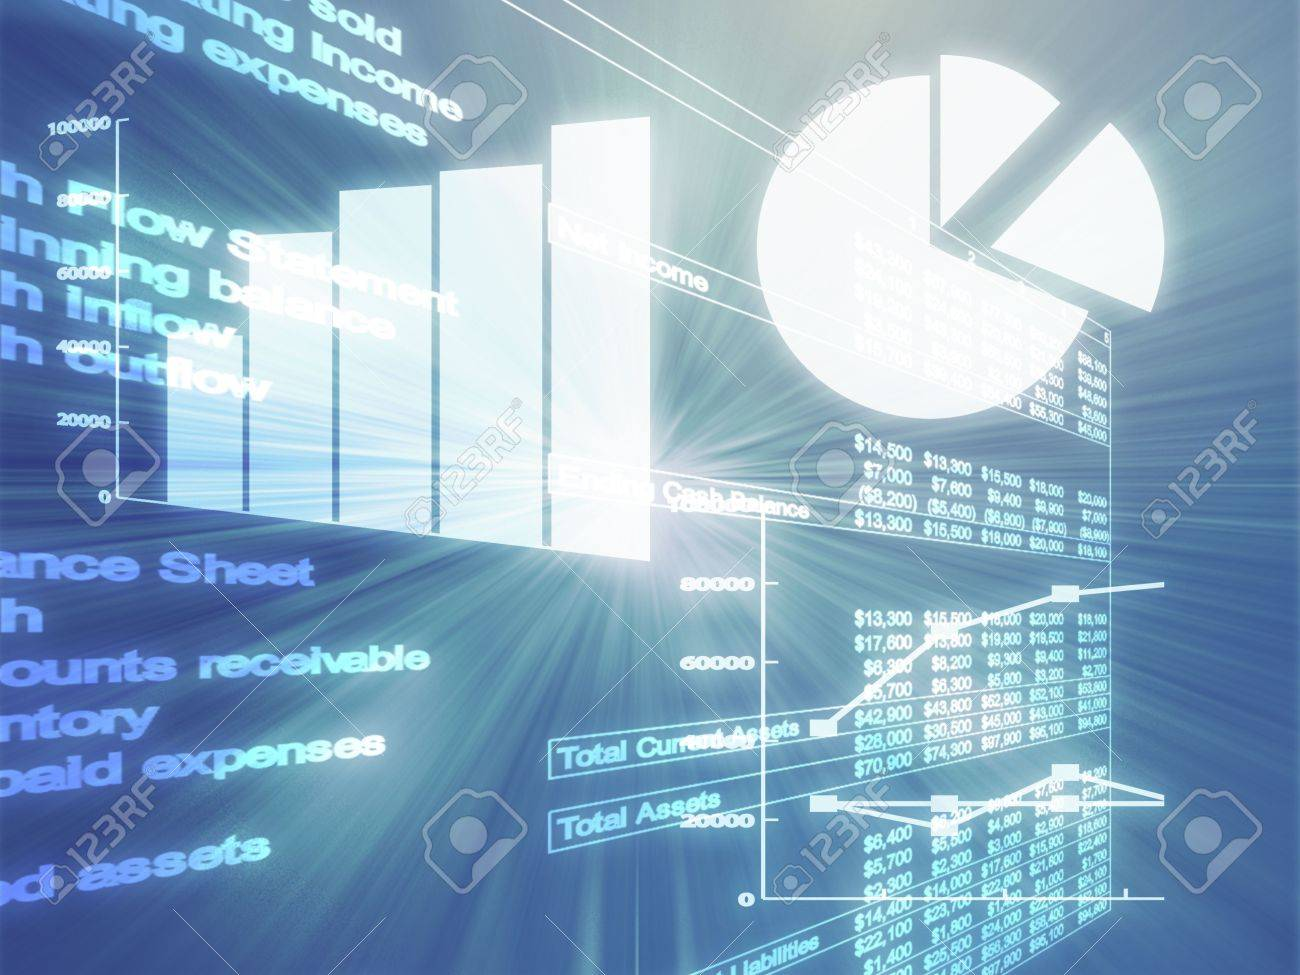 Illustration Of Spreadsheet Data And Business Charts In Glowing ...